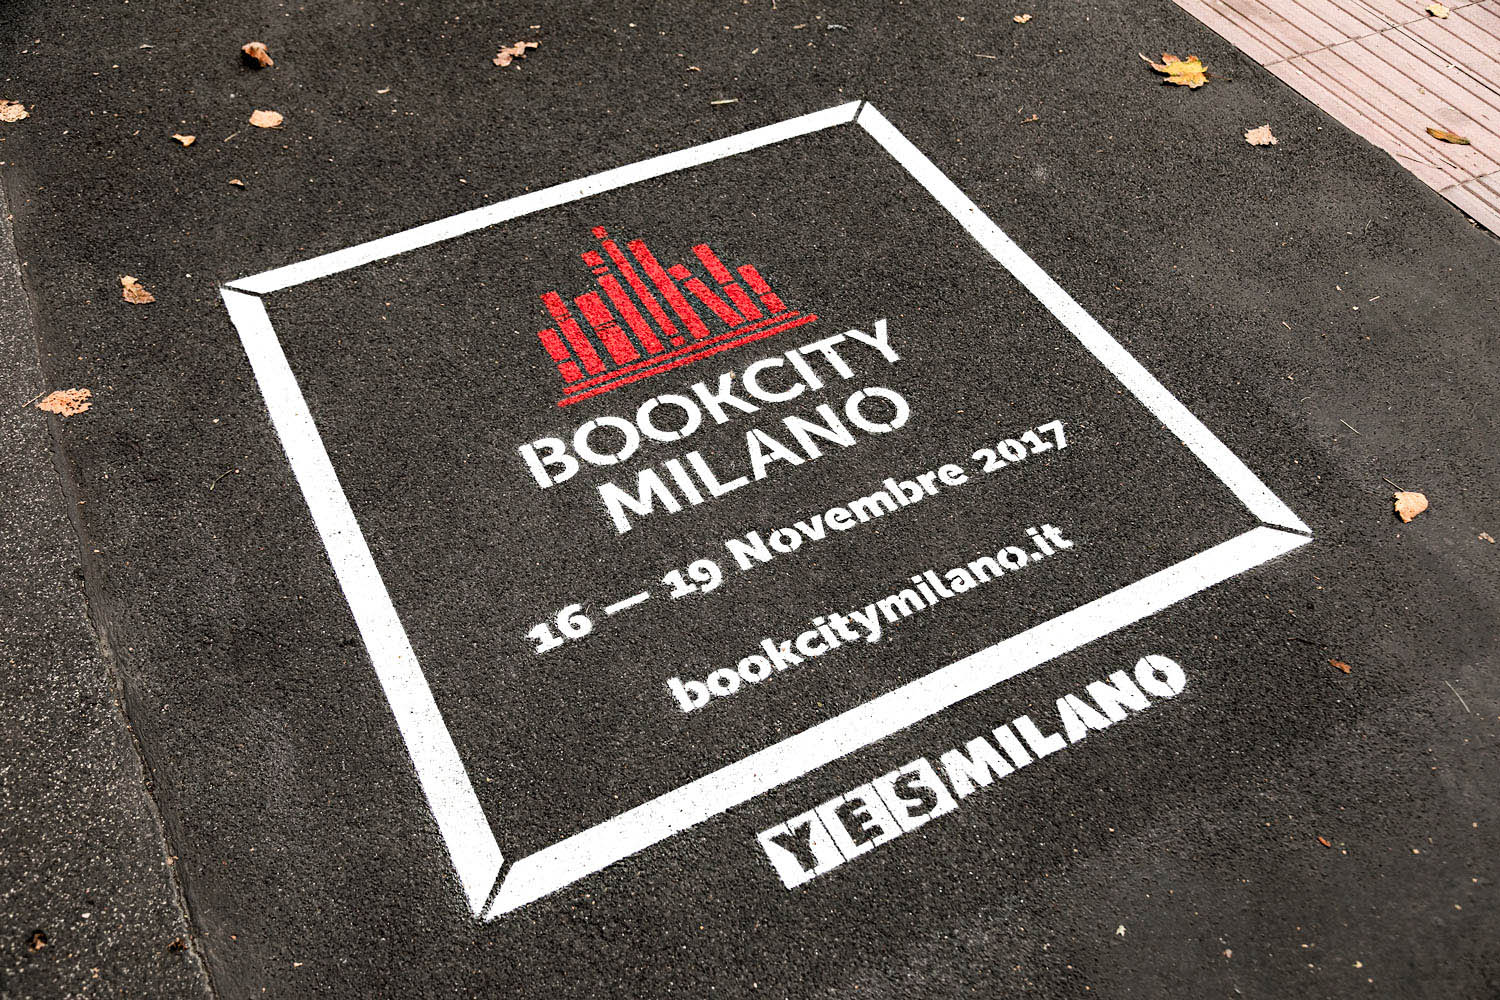 outdoor advertising milano book city